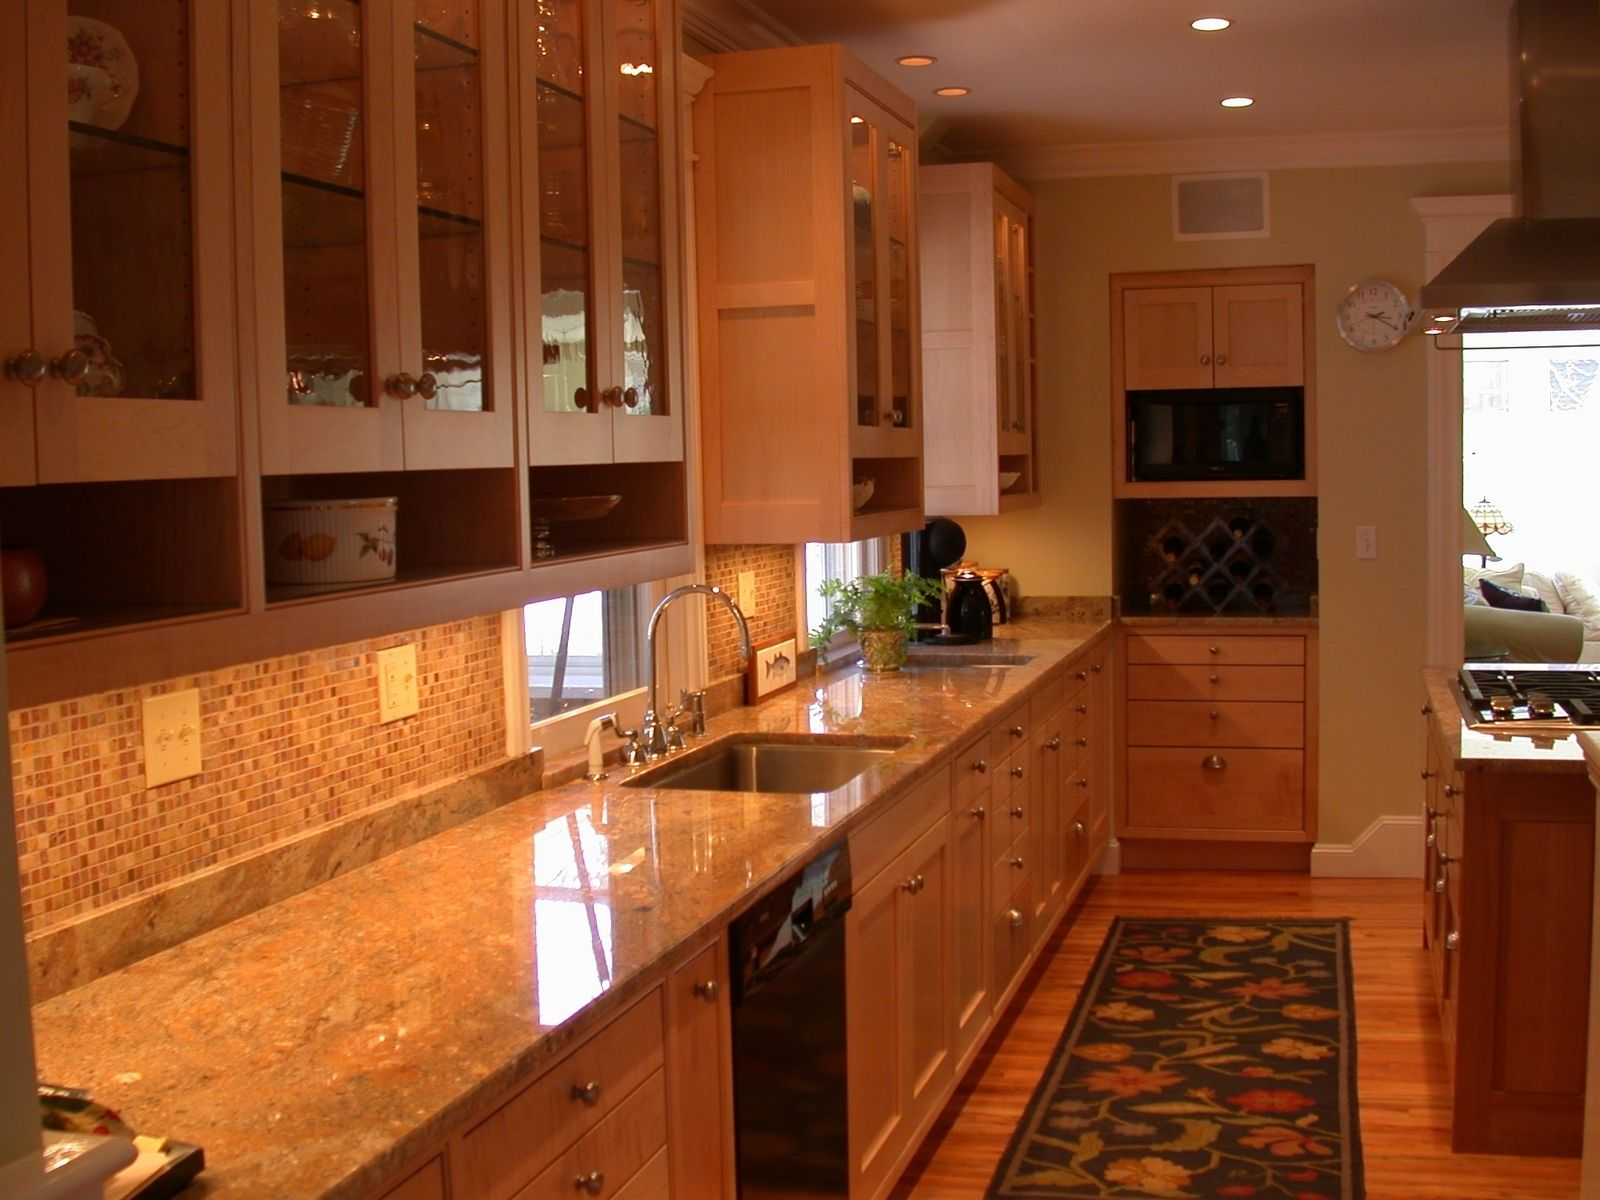 kitchen design greenwich ct handmade custom kitchen greenwich ct by studio two 467